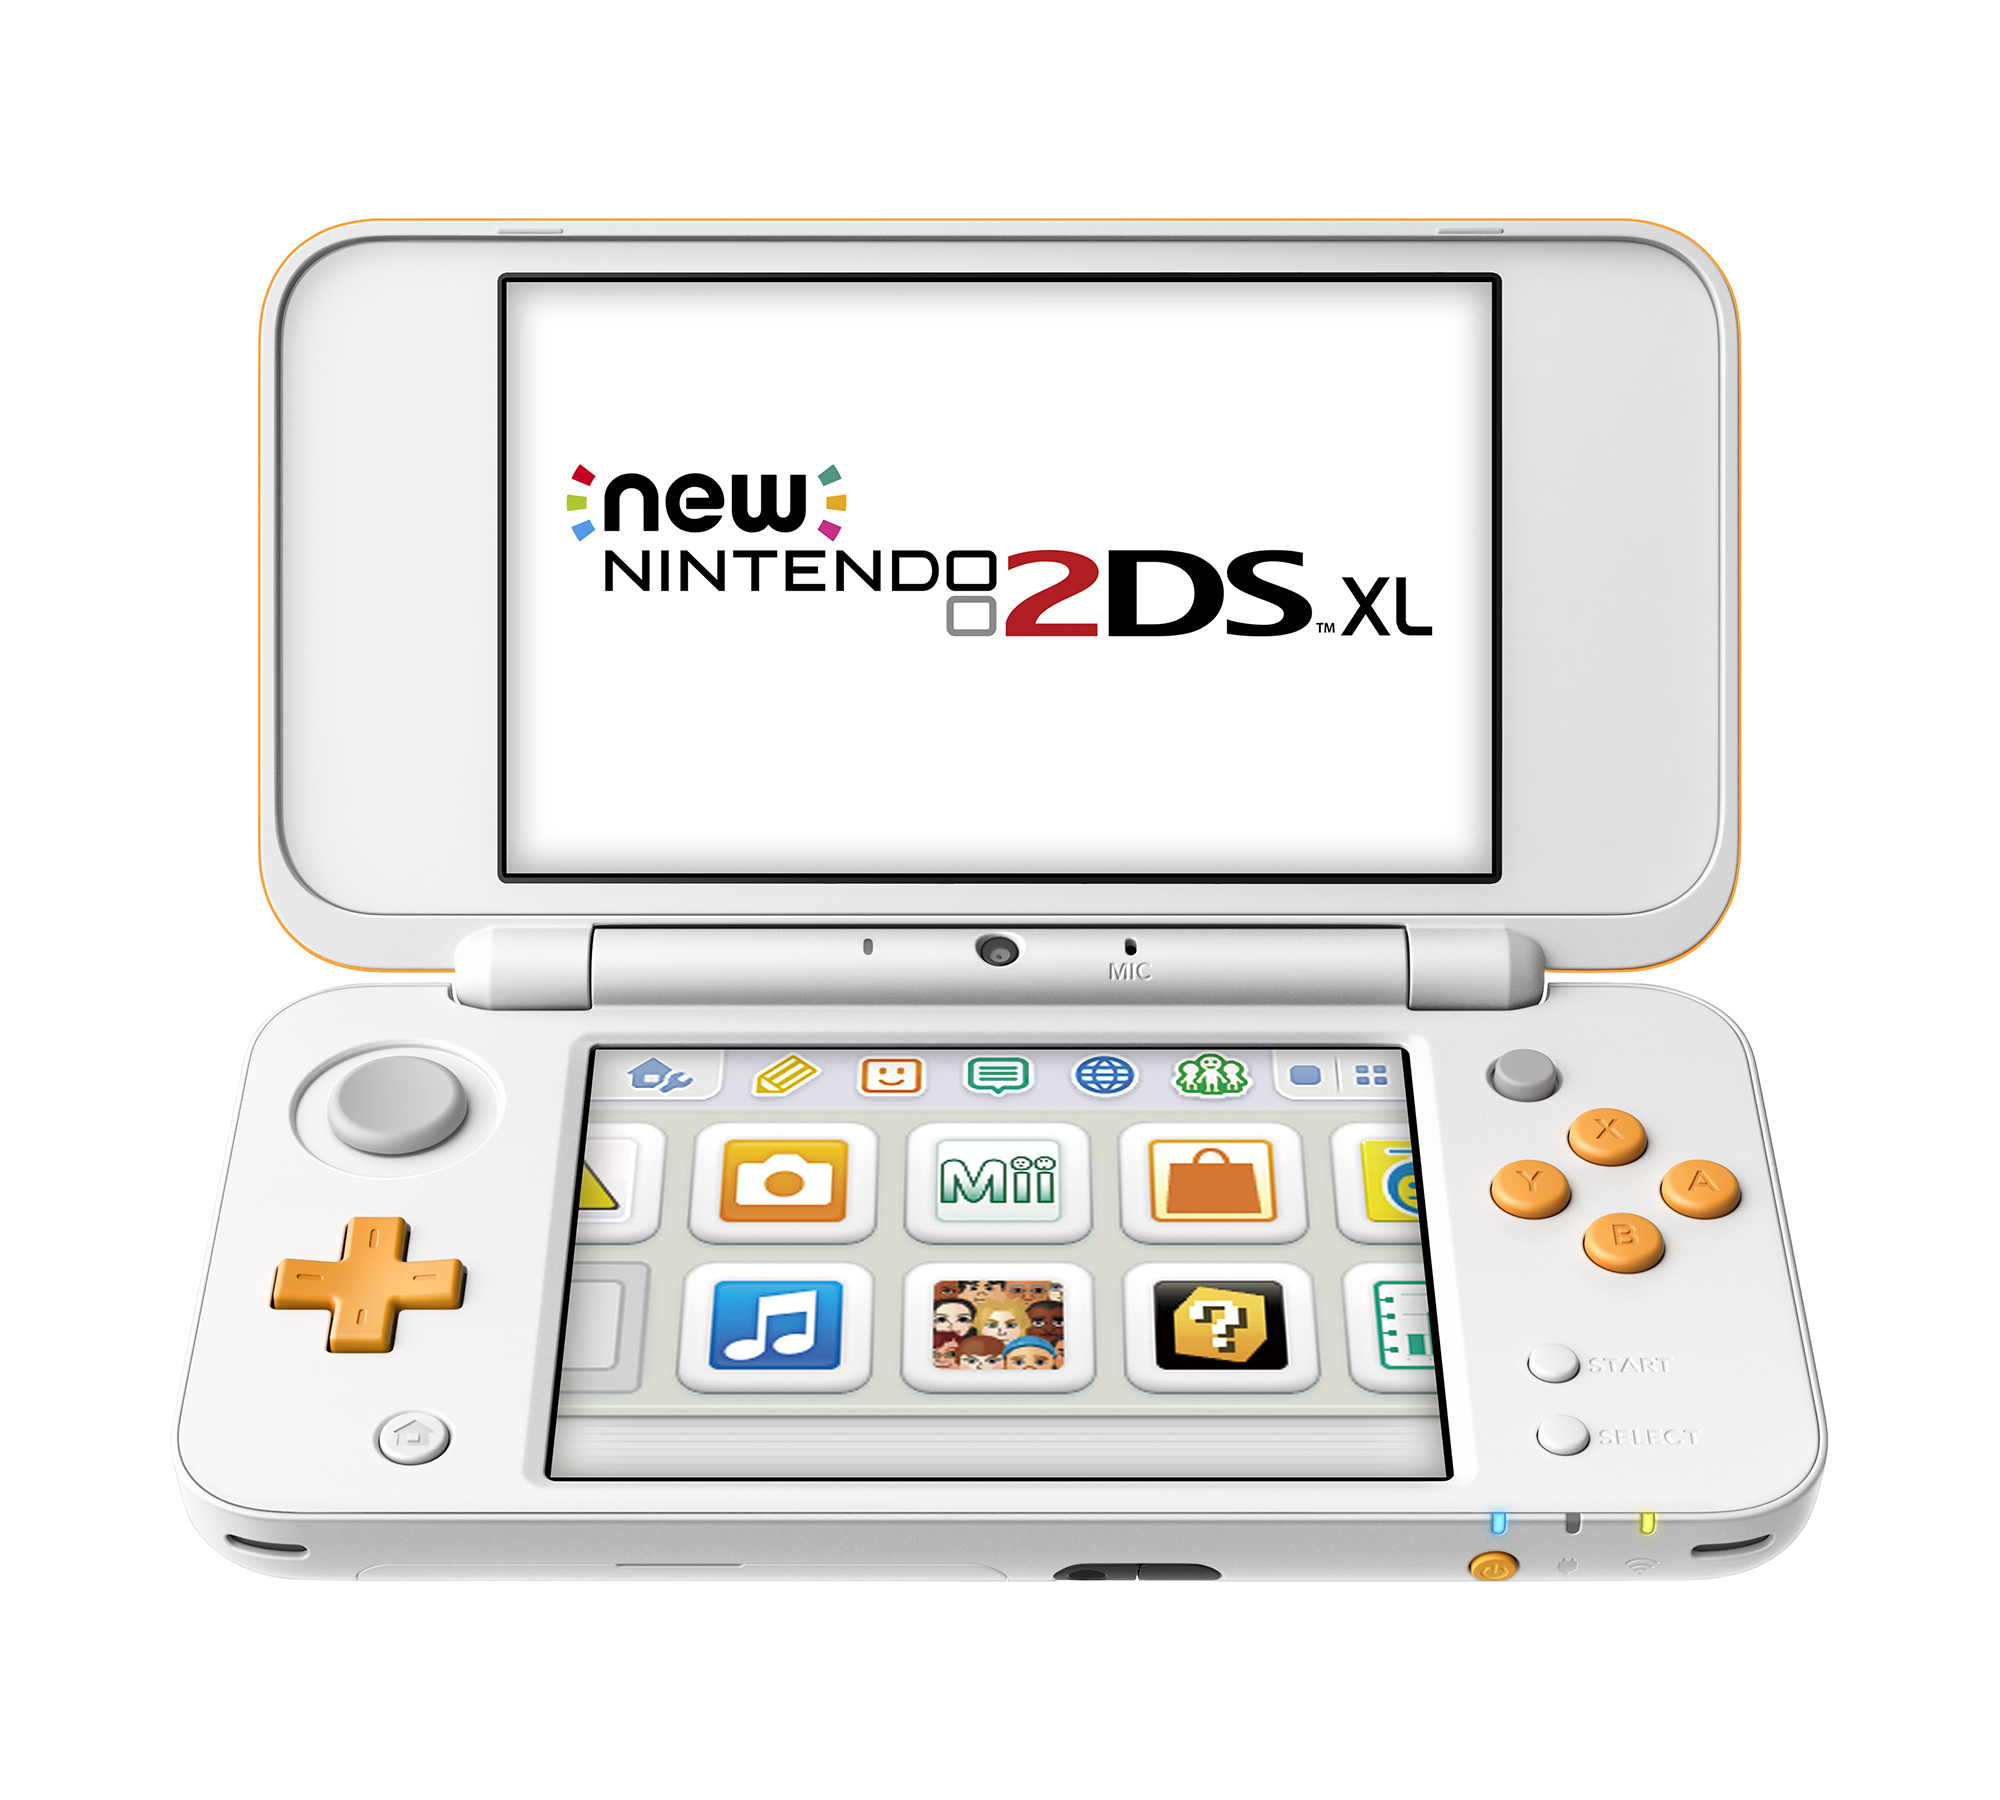 New Nintendo 2DS XL System w  Mario Kart 7 Pre-installed, Orange & White, JANSOAD1 by Nintendo